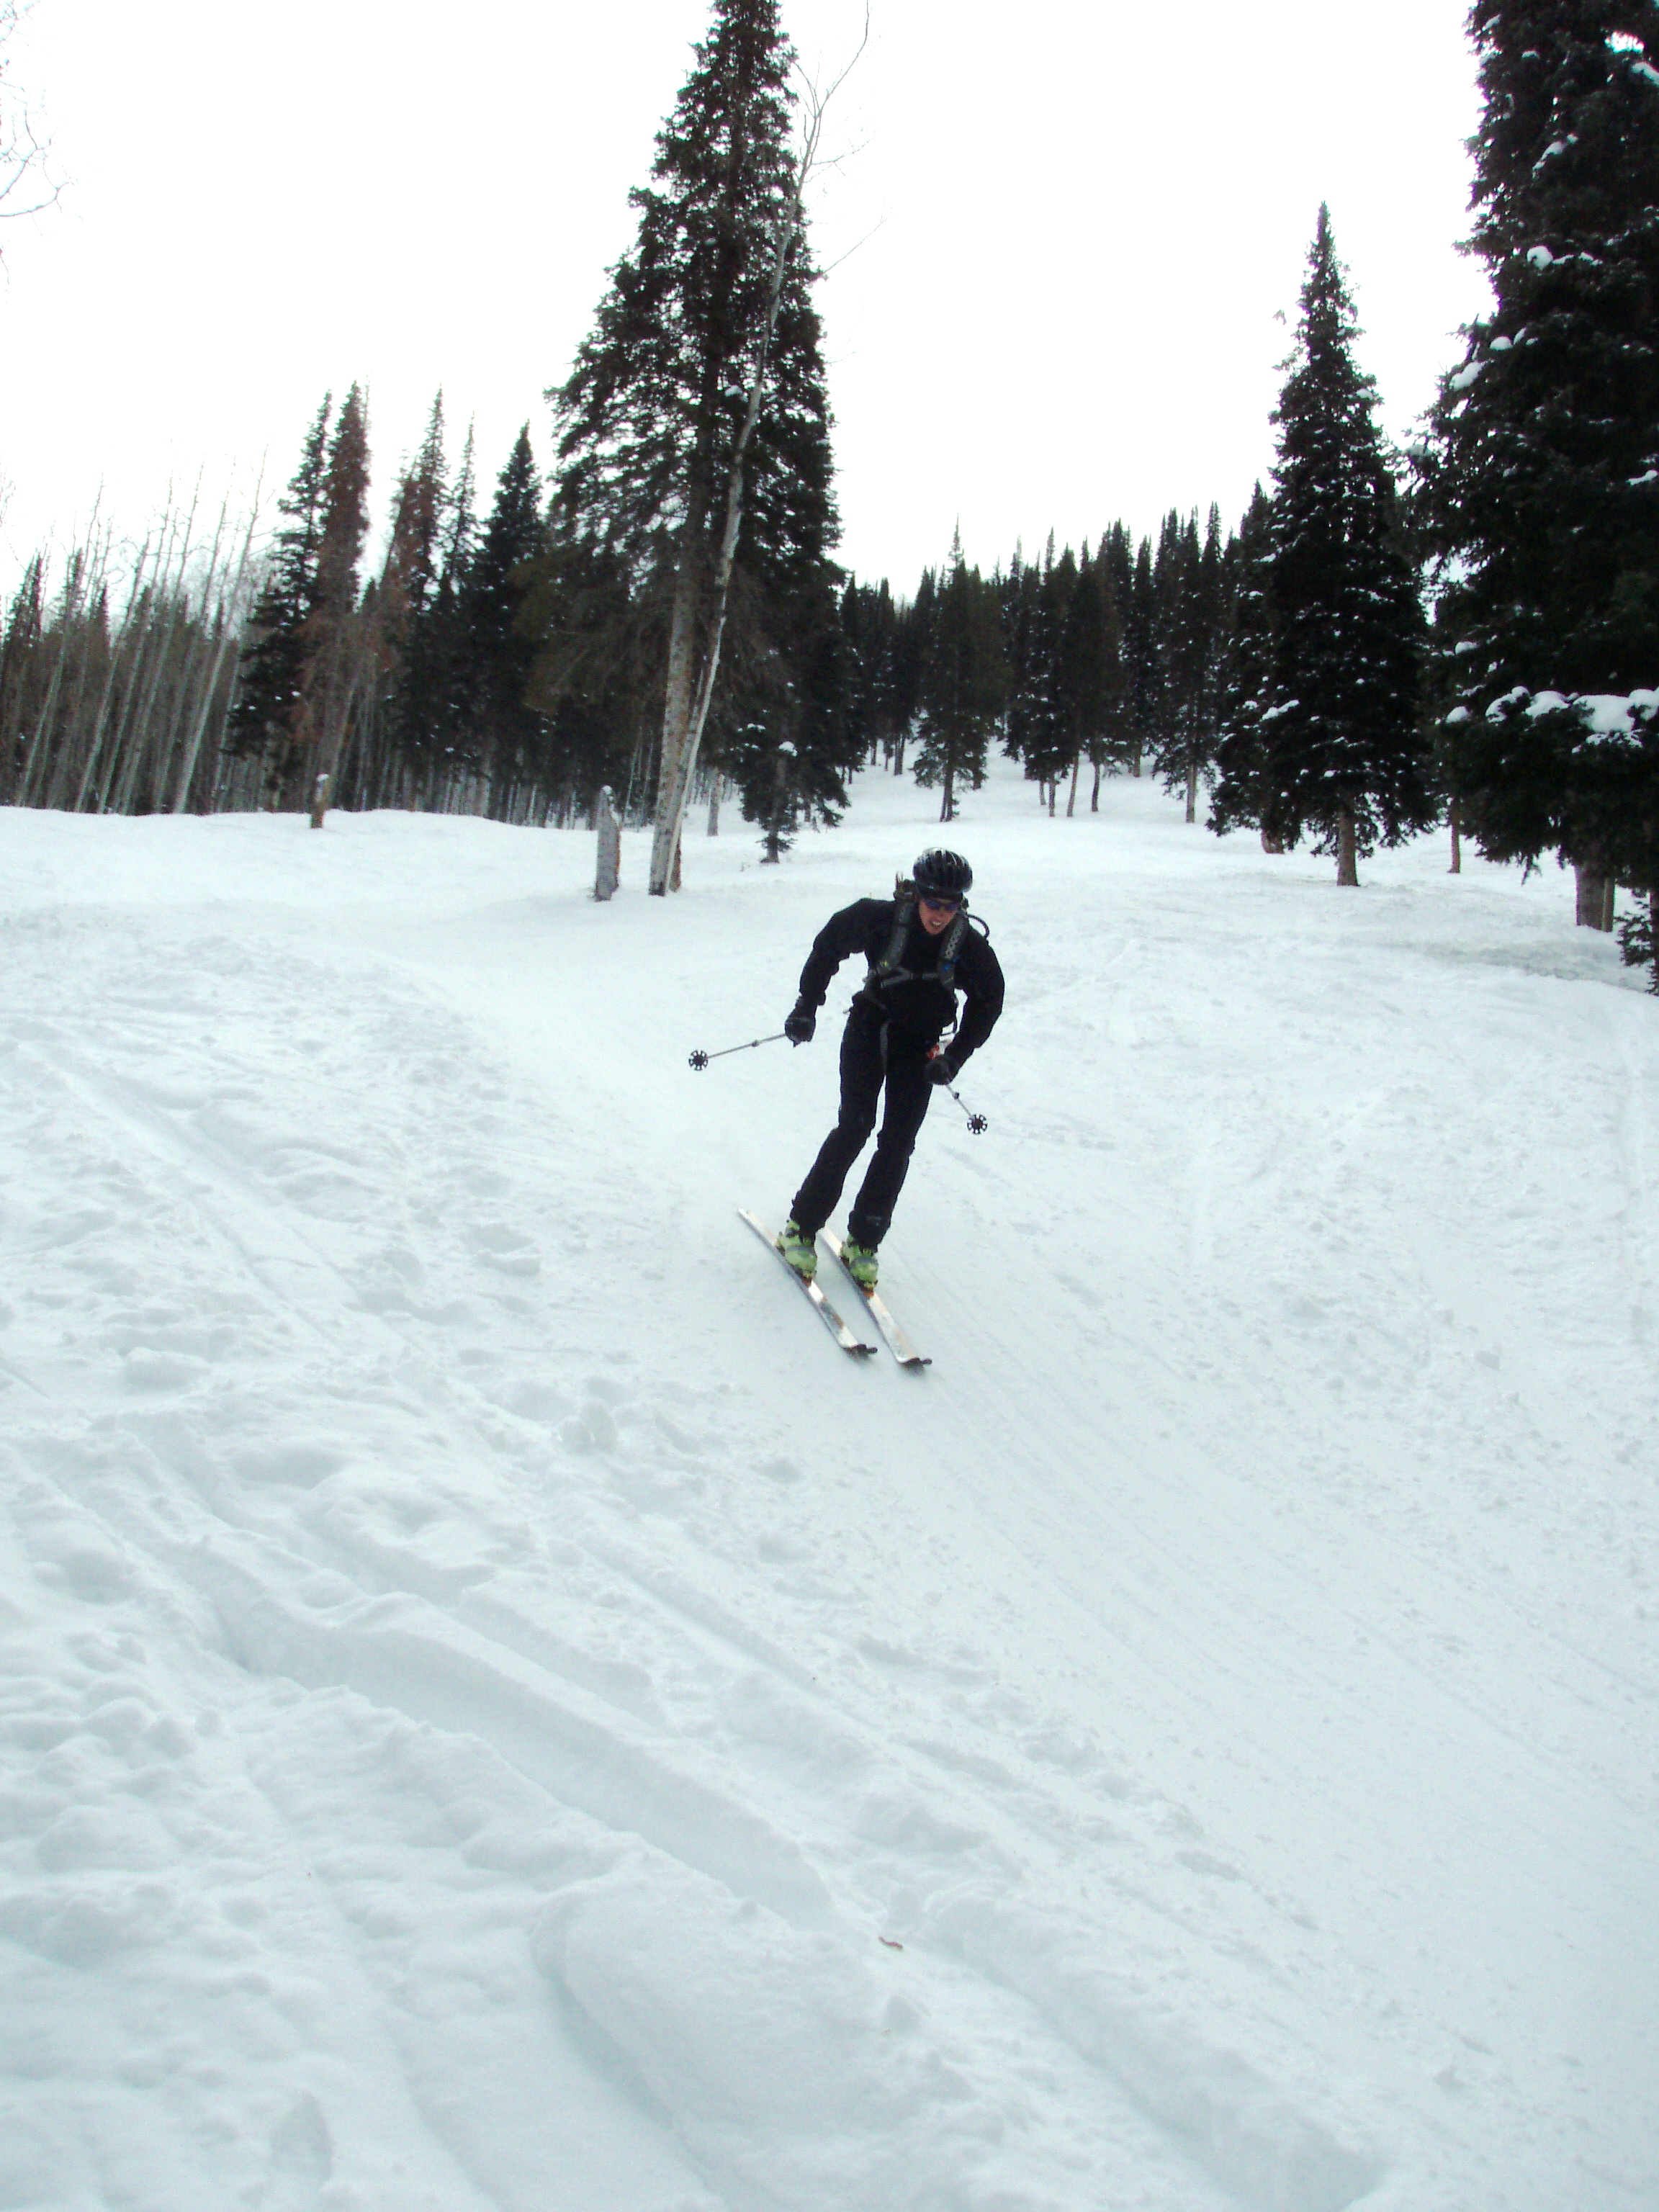 The downhill skiing hurts more than the uphill in these races.